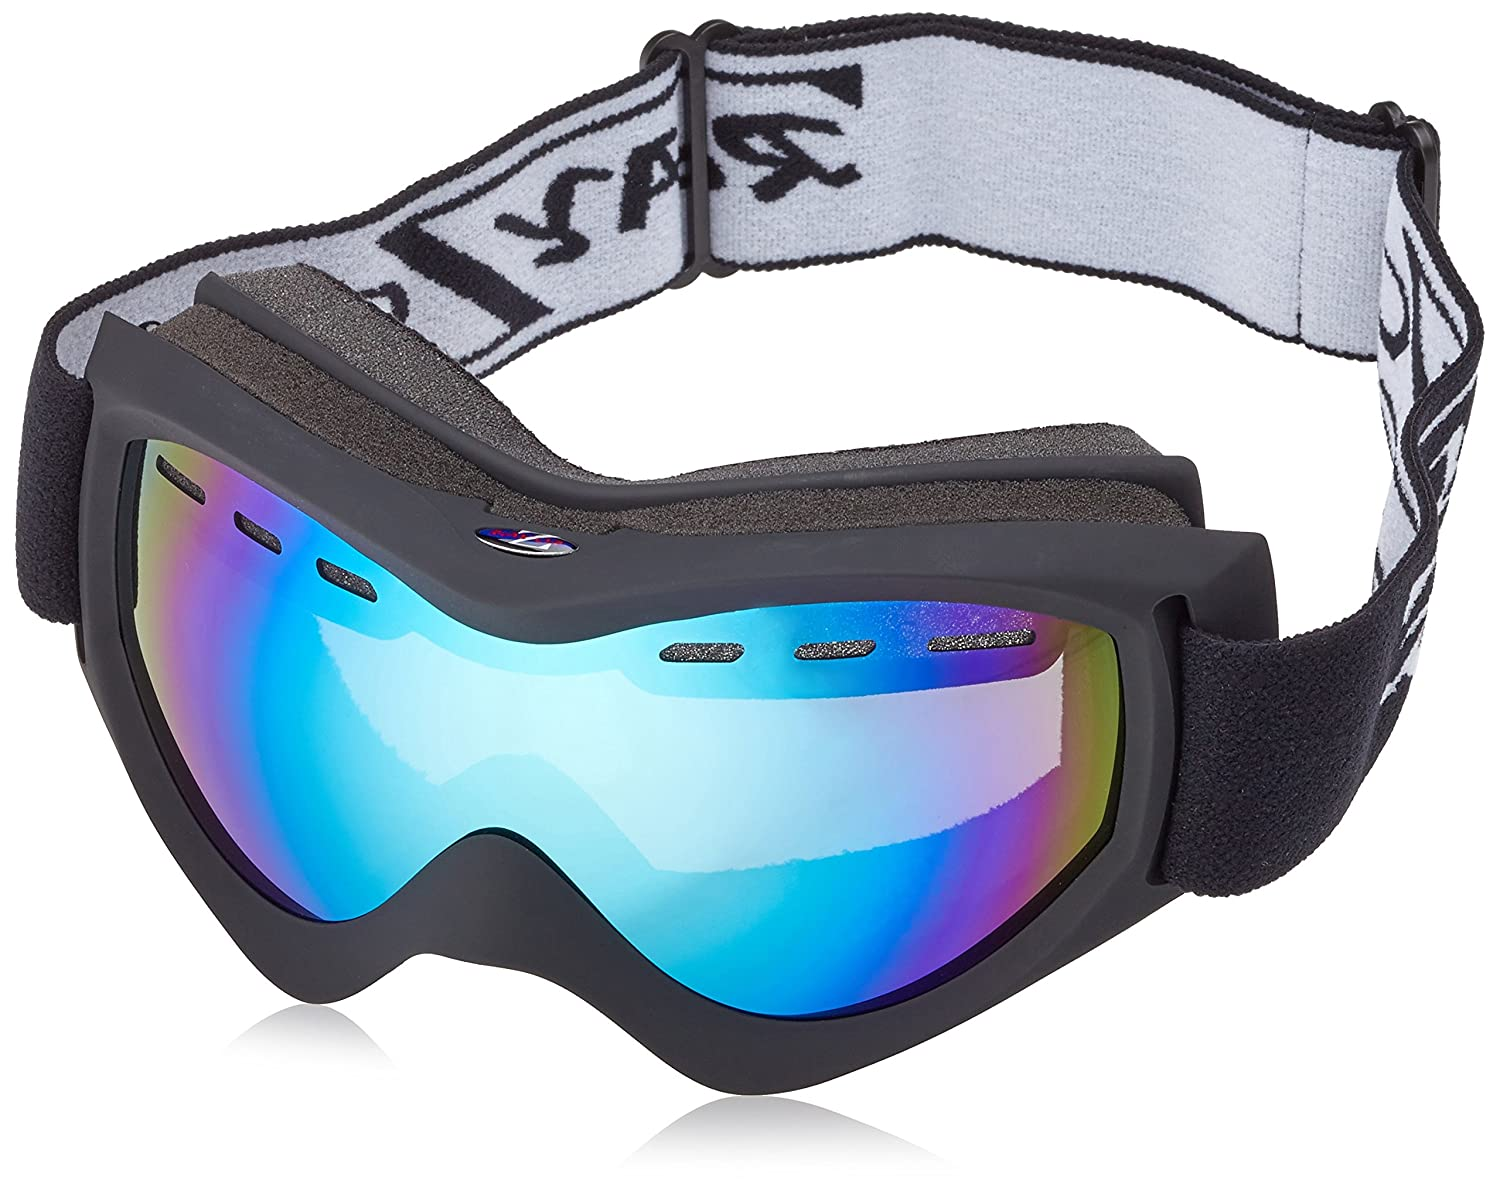 snowboard goggles sale 1jii  Rayzor Professional UV400 Double Lensed Ski / SnowBoard Goggles, With a  Matt Black Frame and an Anti Fog Coated, Vented Blue Iridium